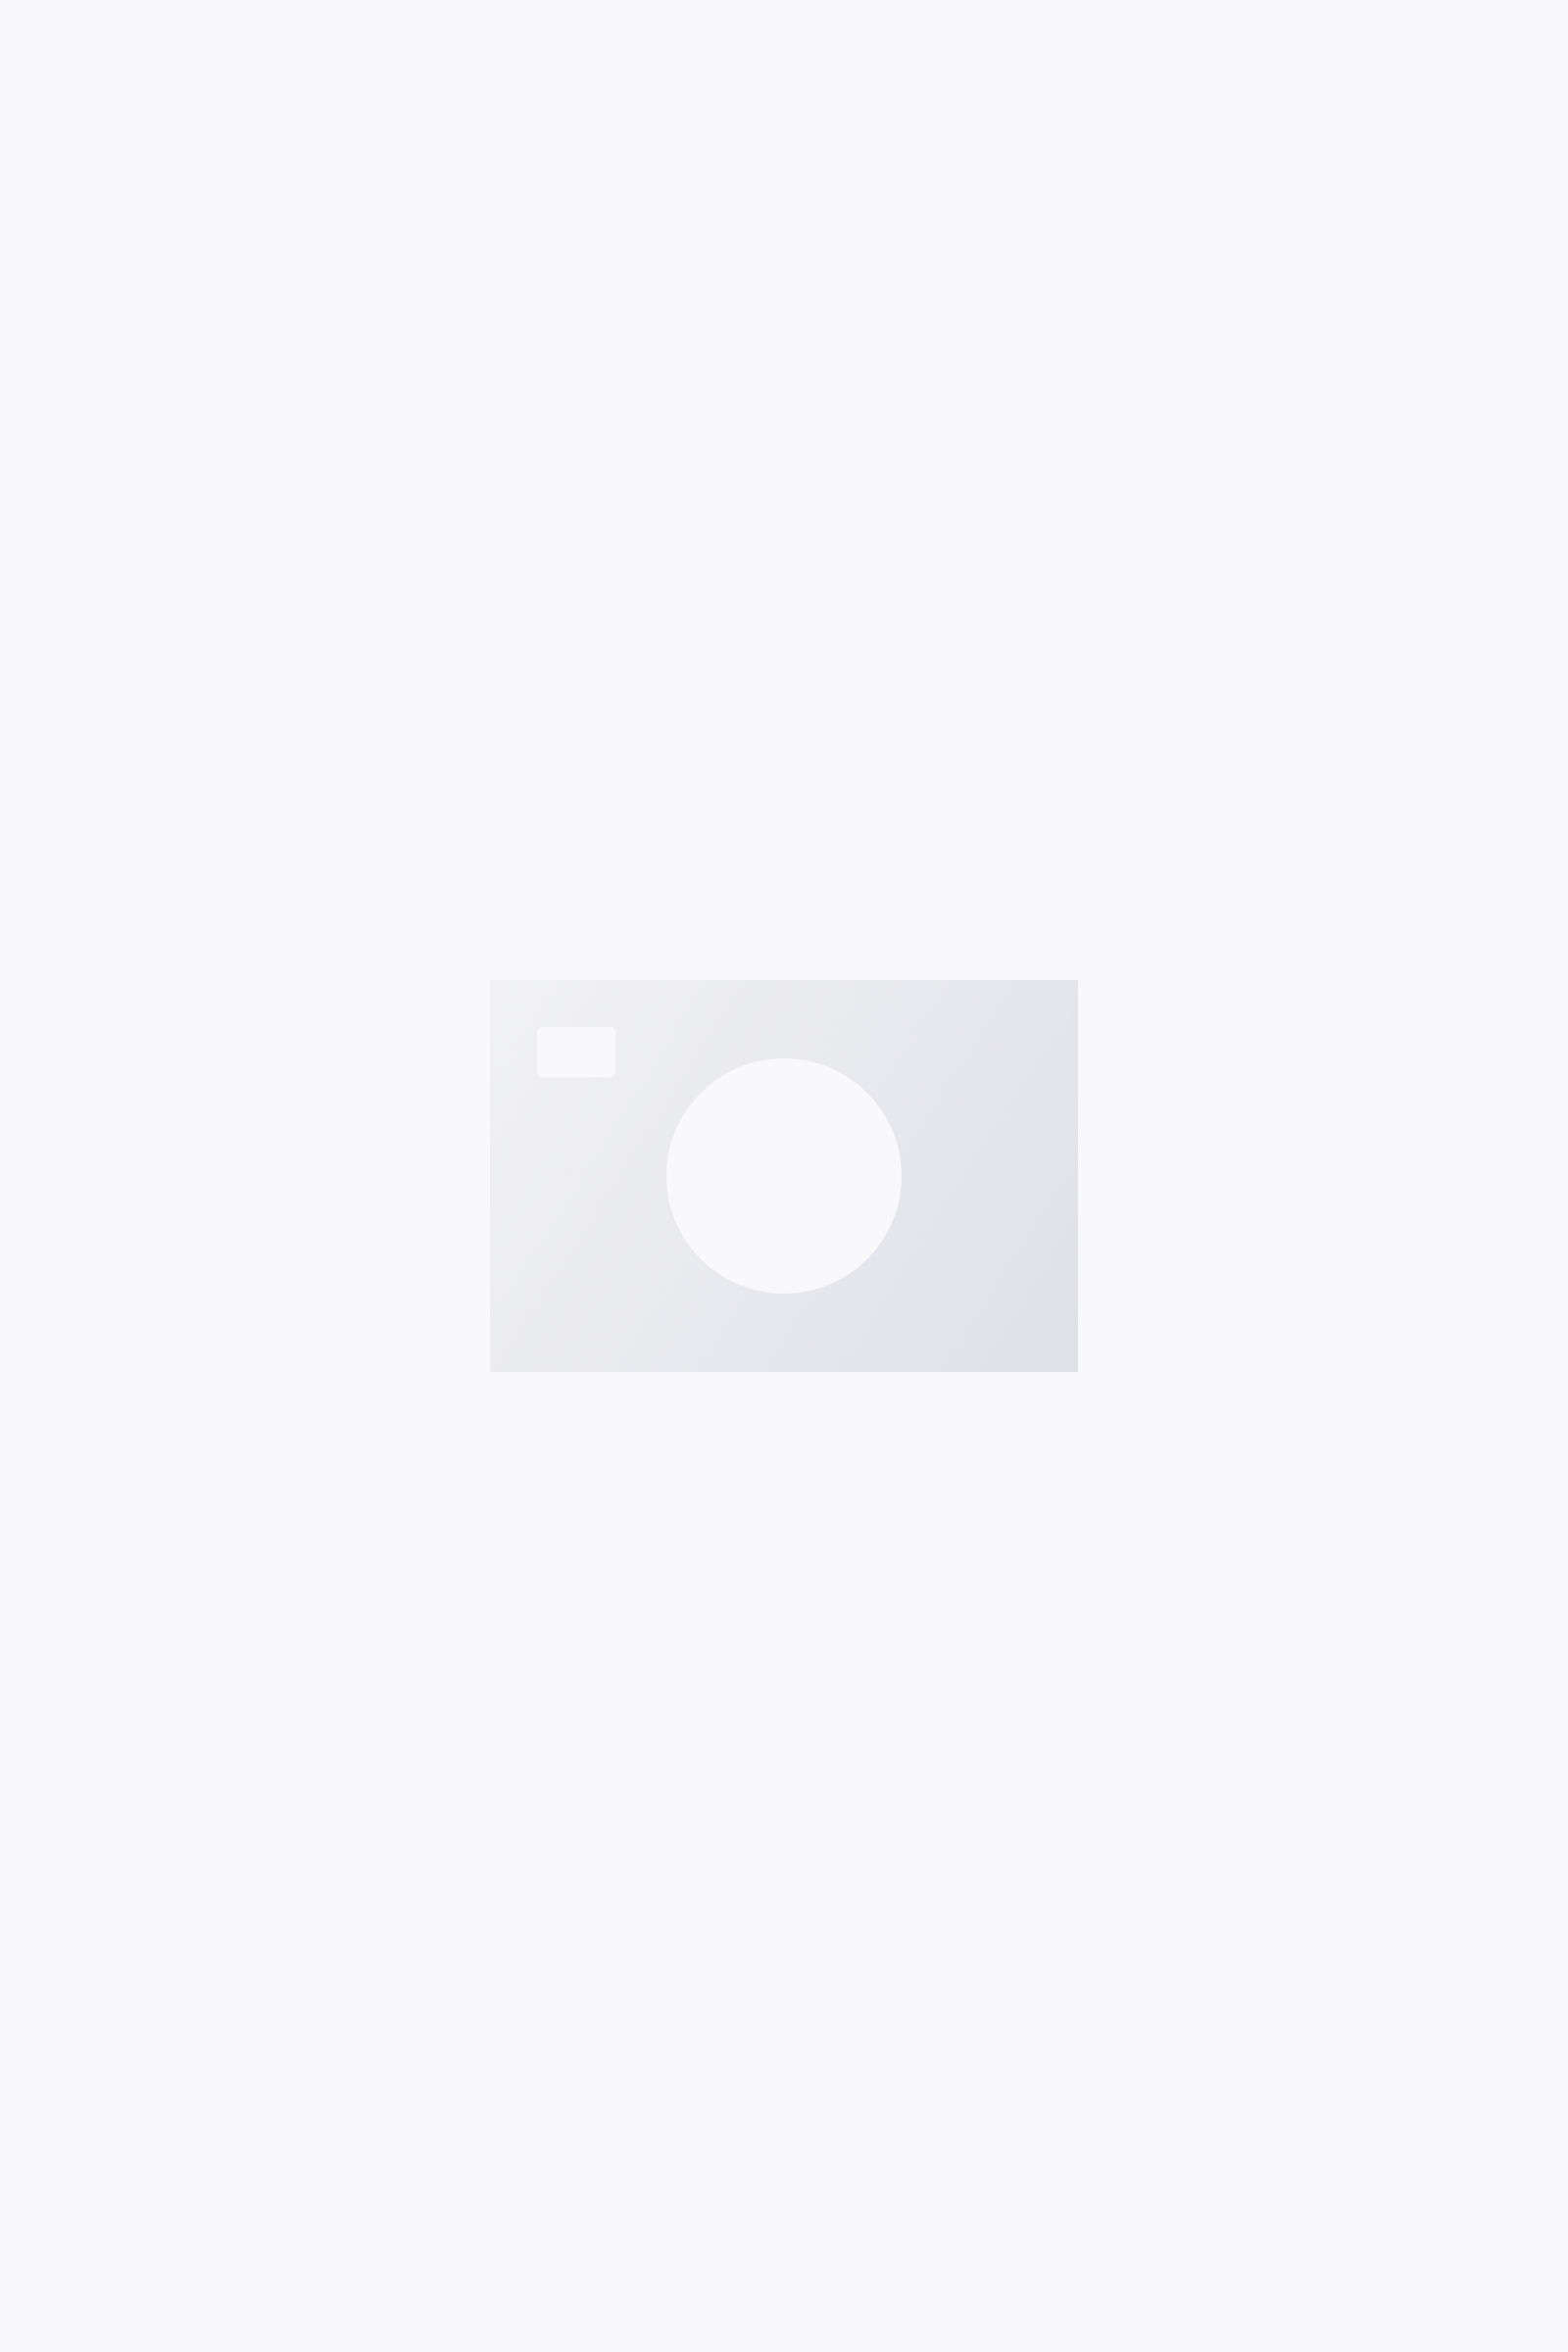 COS WRAP TROUSERS,black